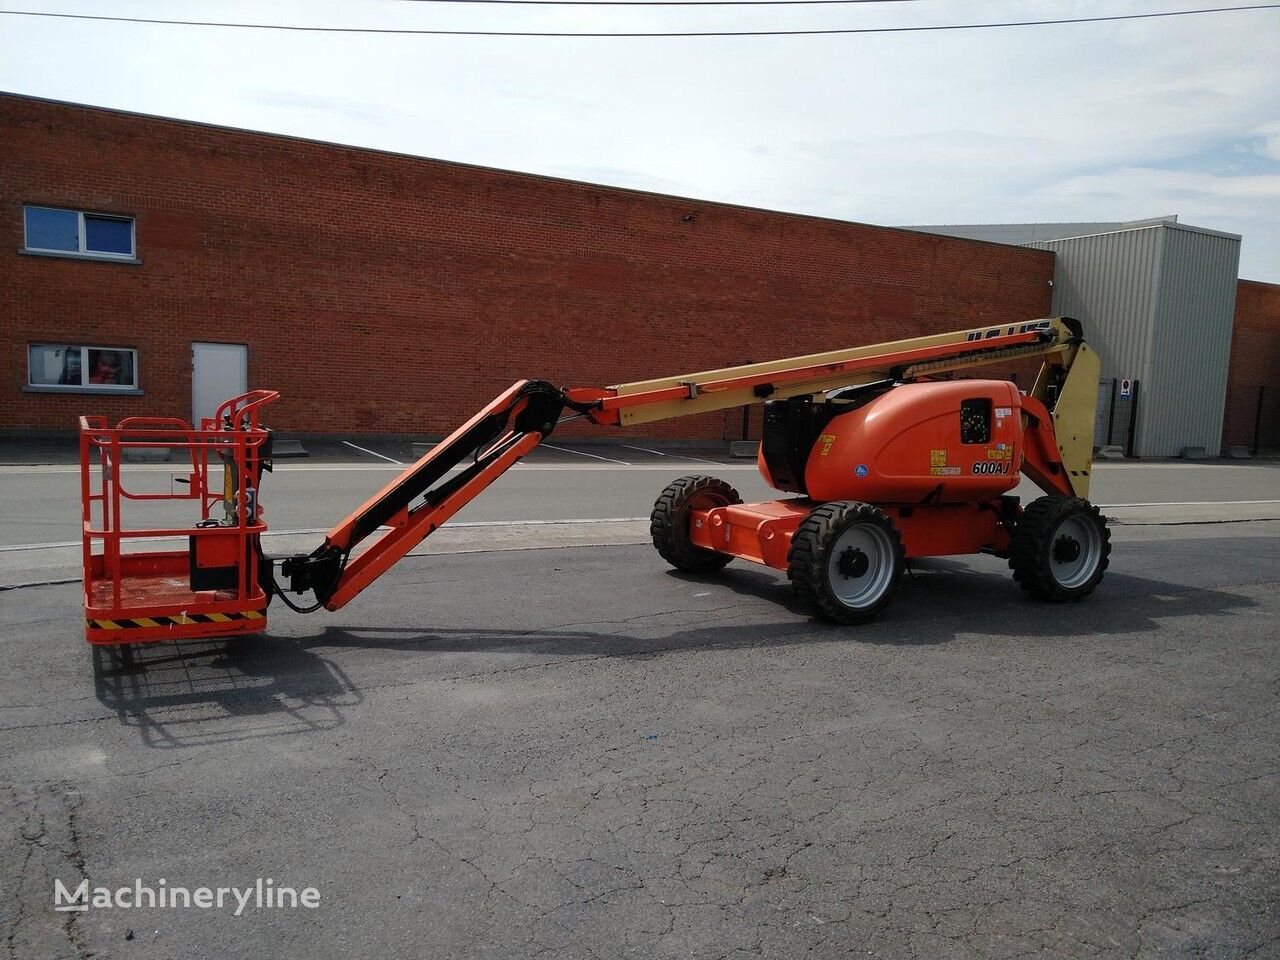 JLG 600AJ articulated boom lift